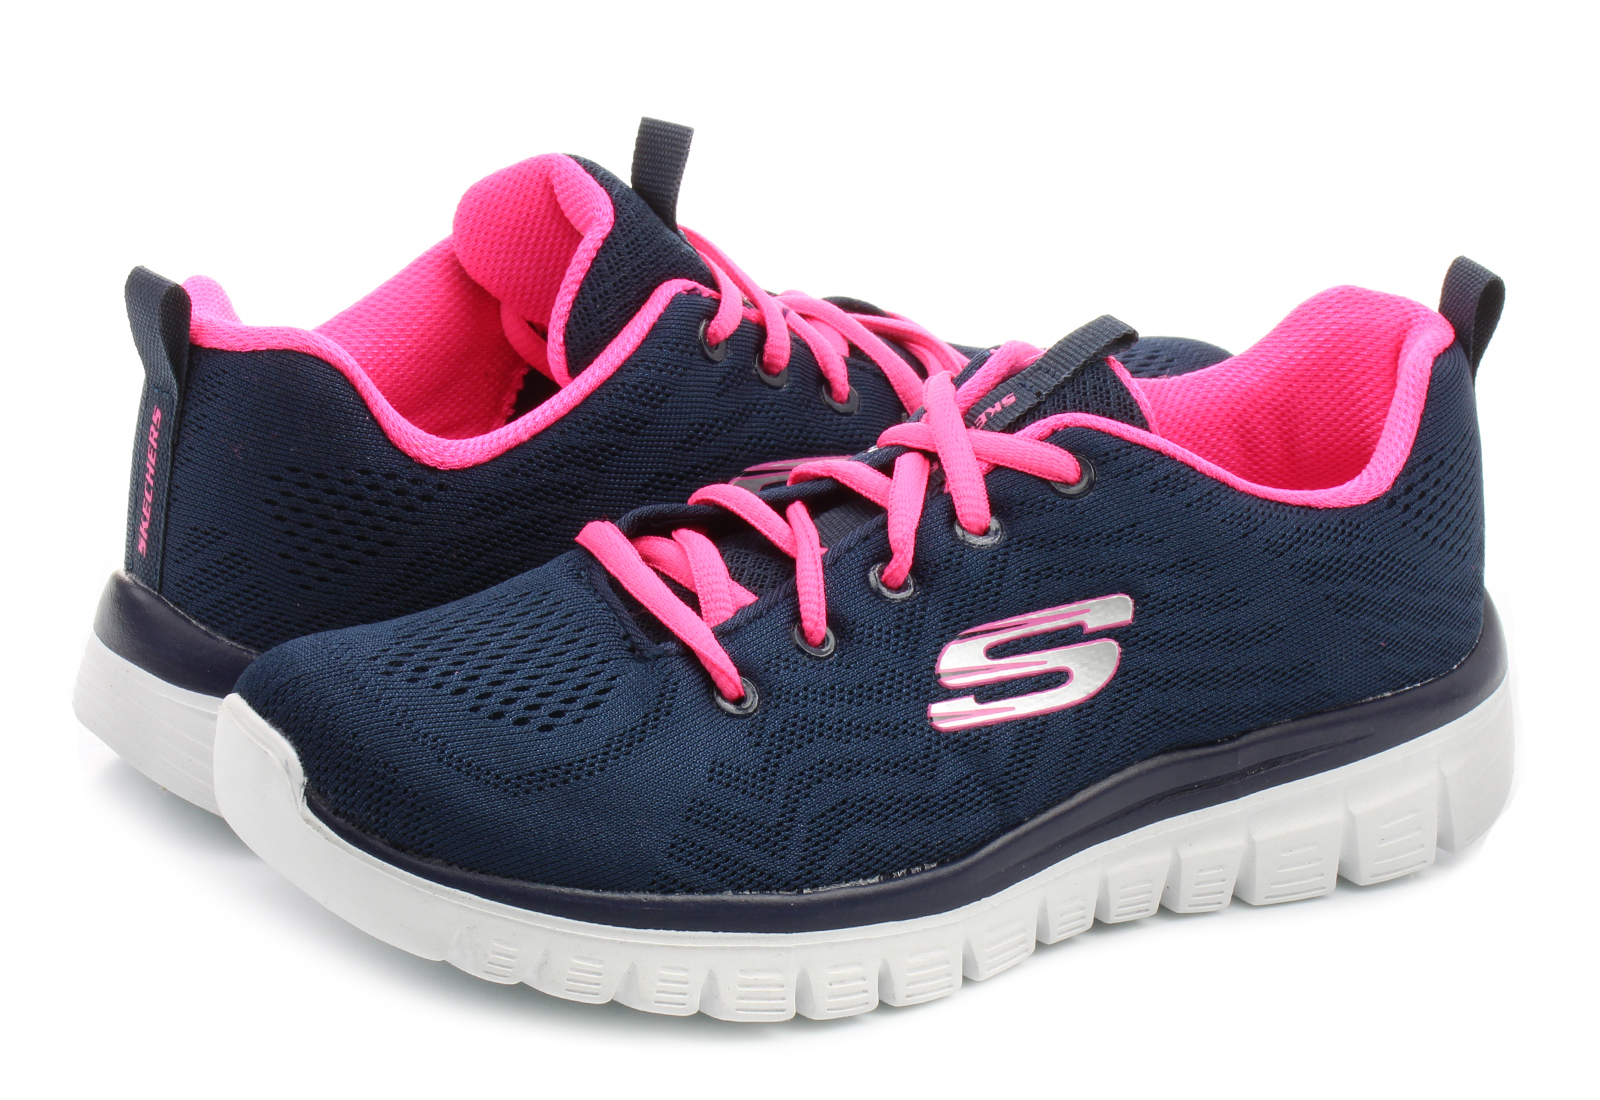 Skechers Cipő - Graceful - Get Connected - 12615-nvhp - Office Shoes ... 0dfba97c73